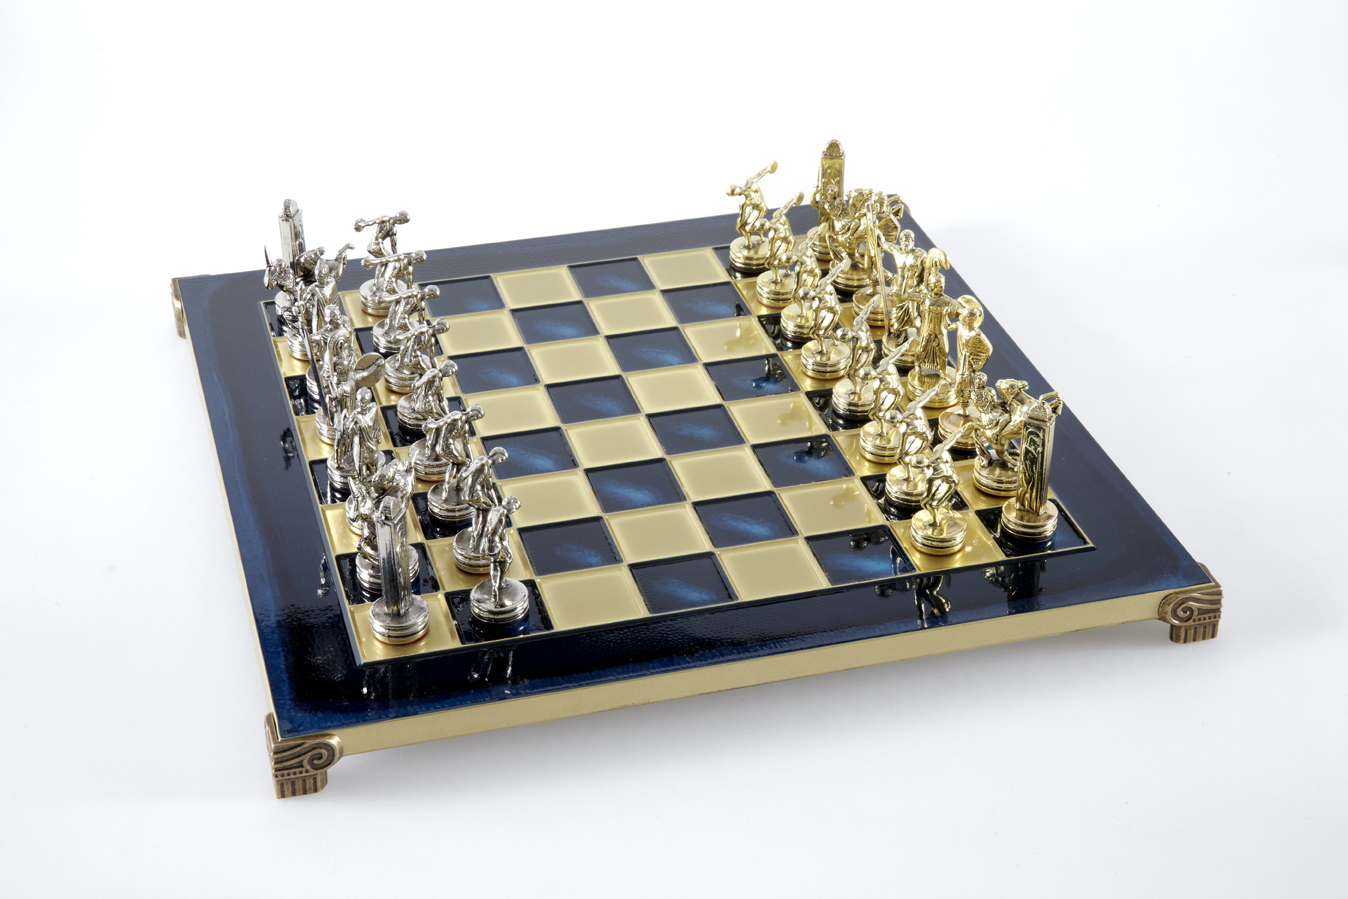 Discuss Thrower chess set with gold-silver chessmen/Blue chessboard 36 sm